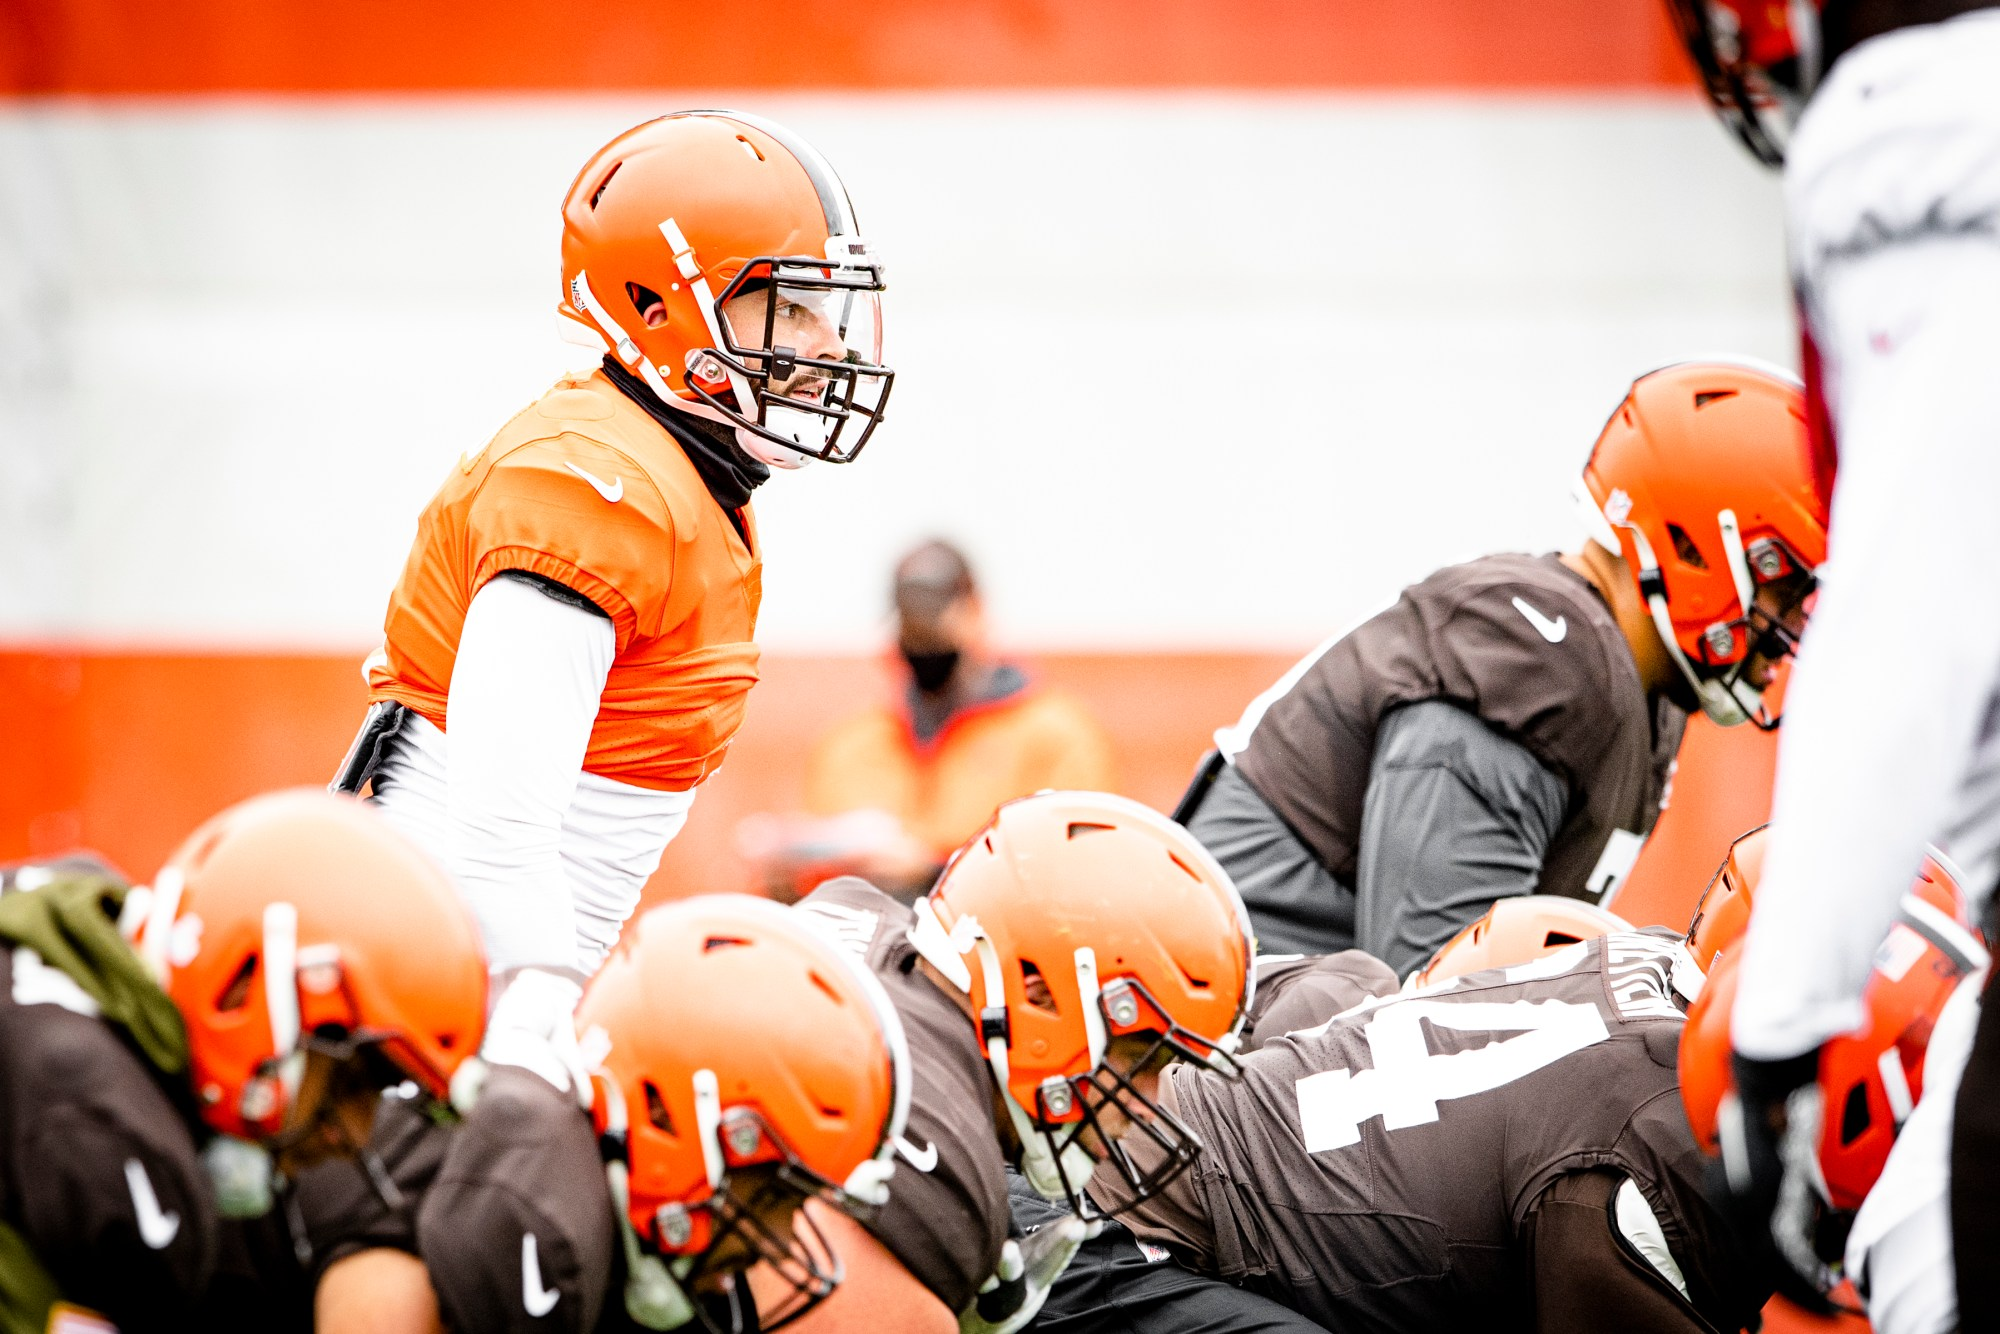 Quarterback Baker Mayfield (6) during practice on September 30, 2020